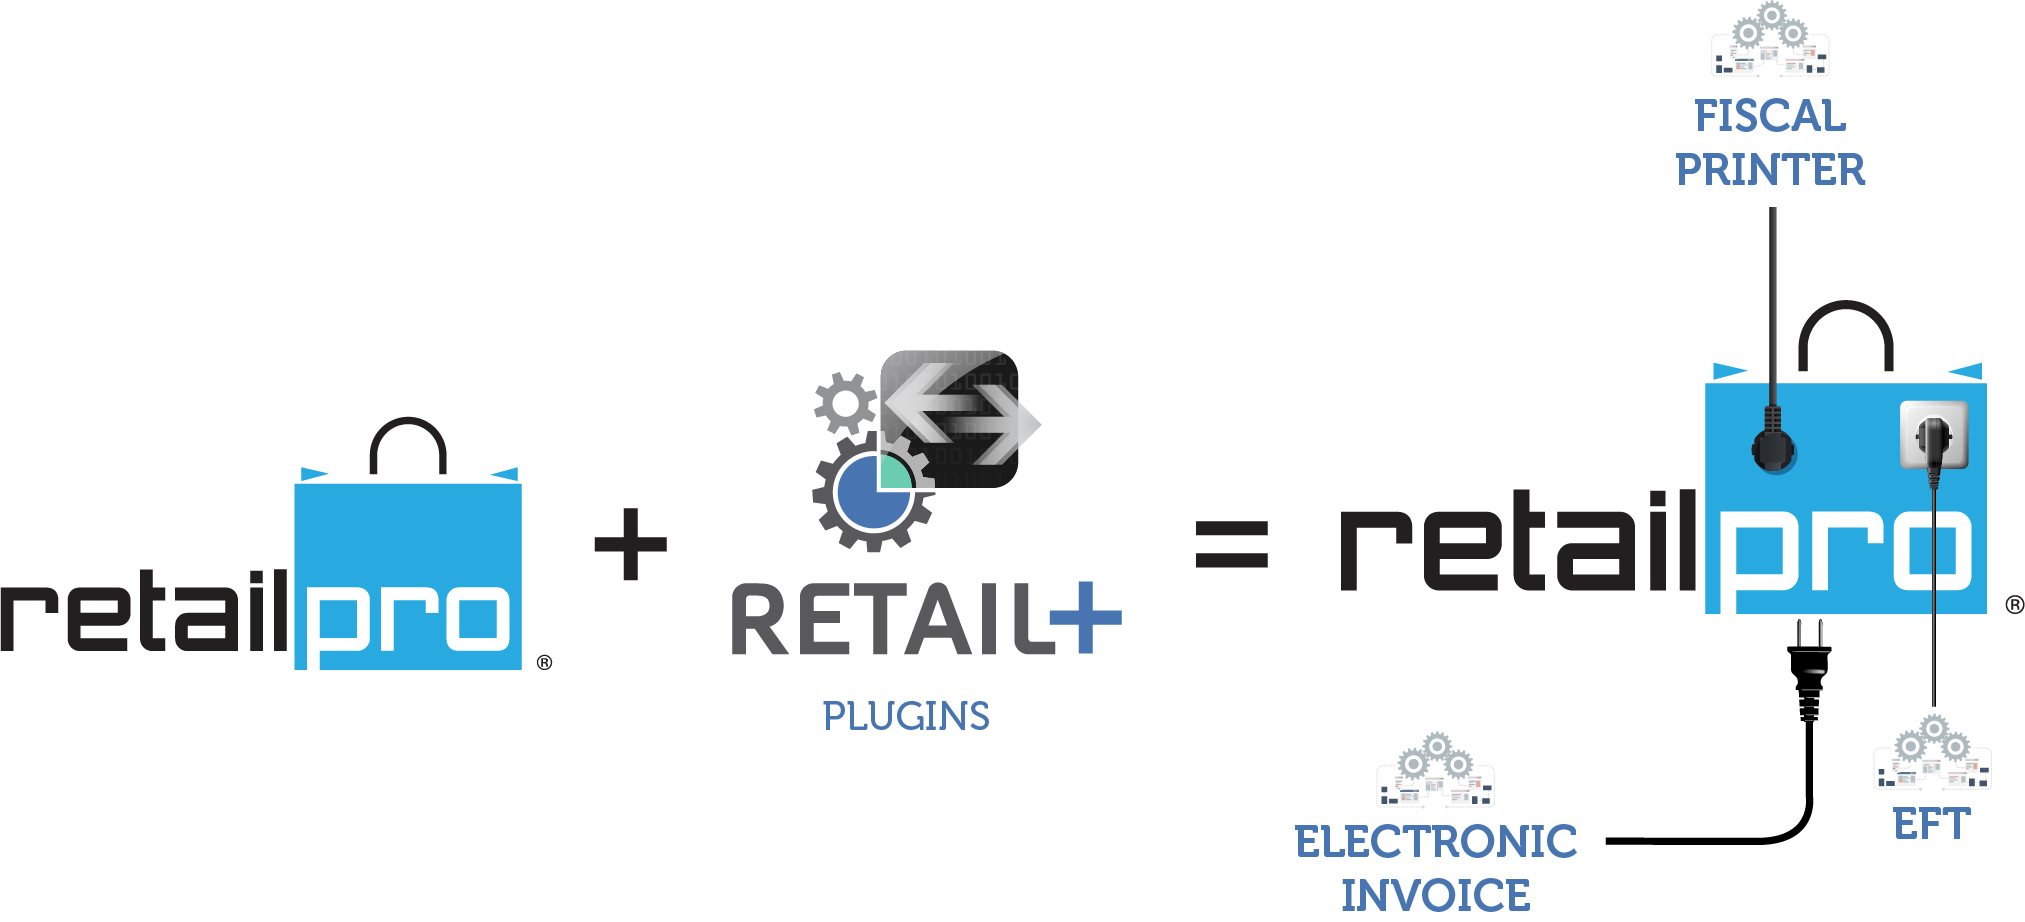 Retail+_Plugins_Interface